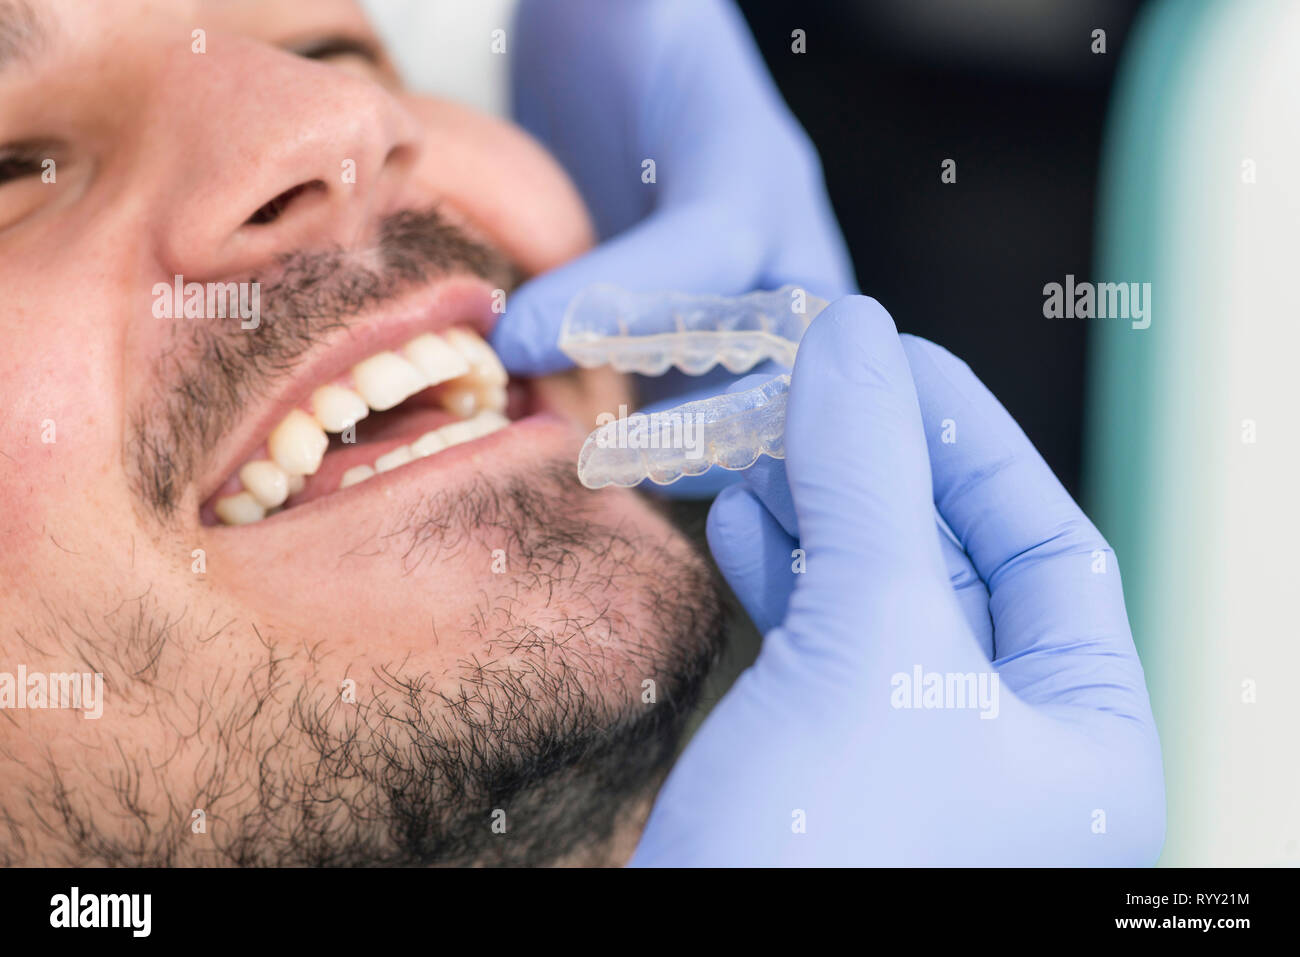 Orthodontist fitting invisible braces. - Stock Image